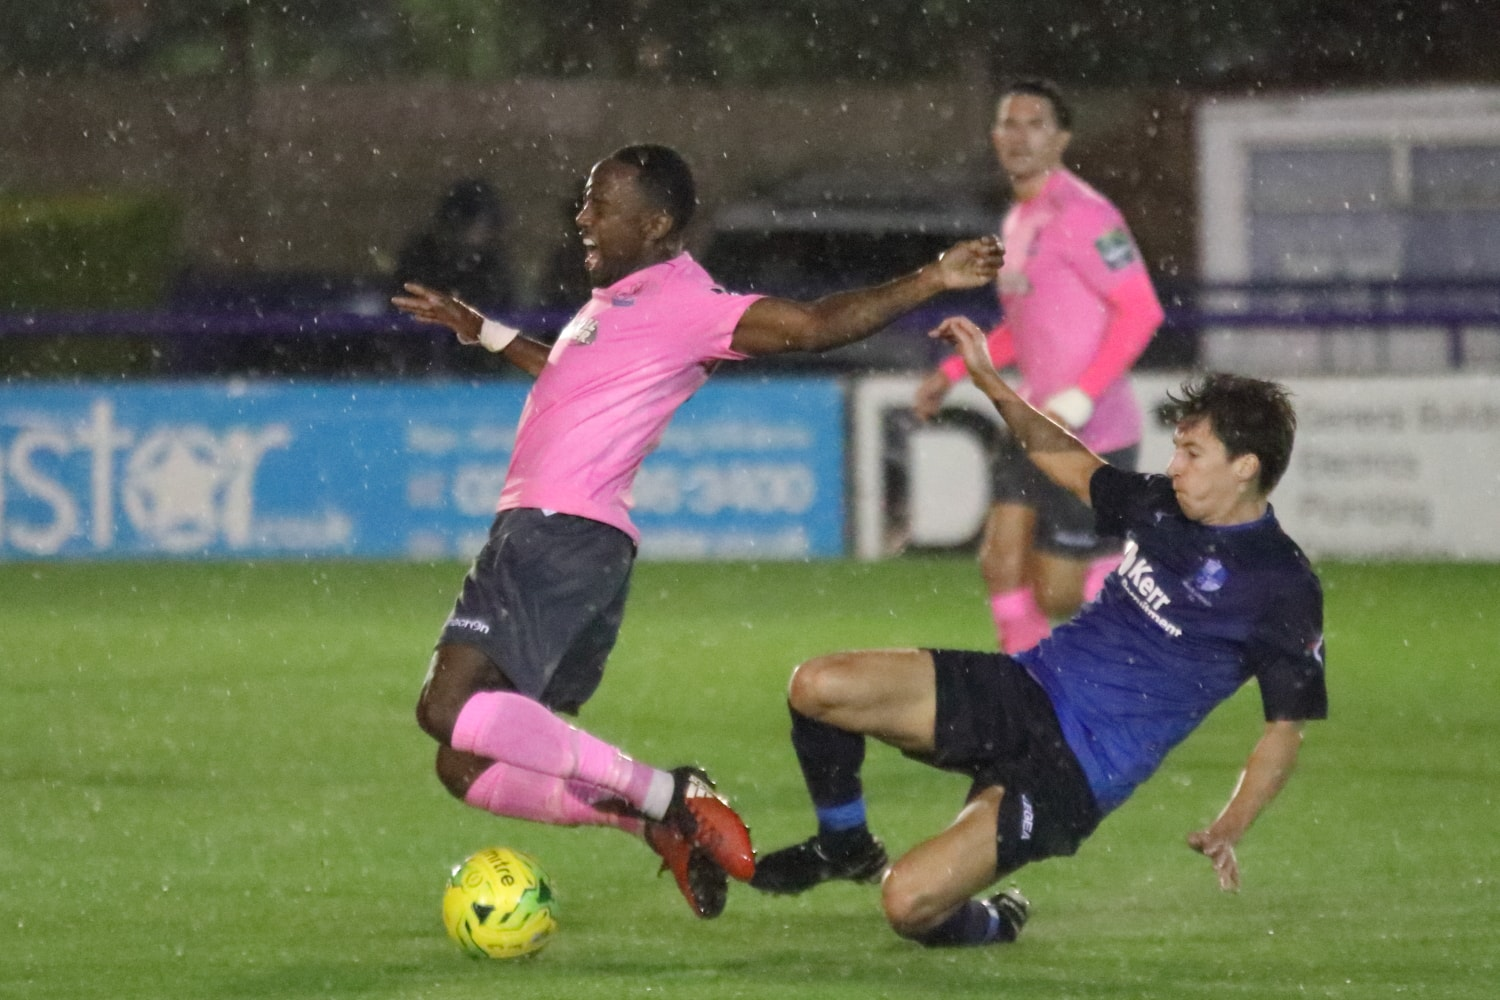 Wingate & Finchley - Tooting & Mitcham soccer prediction